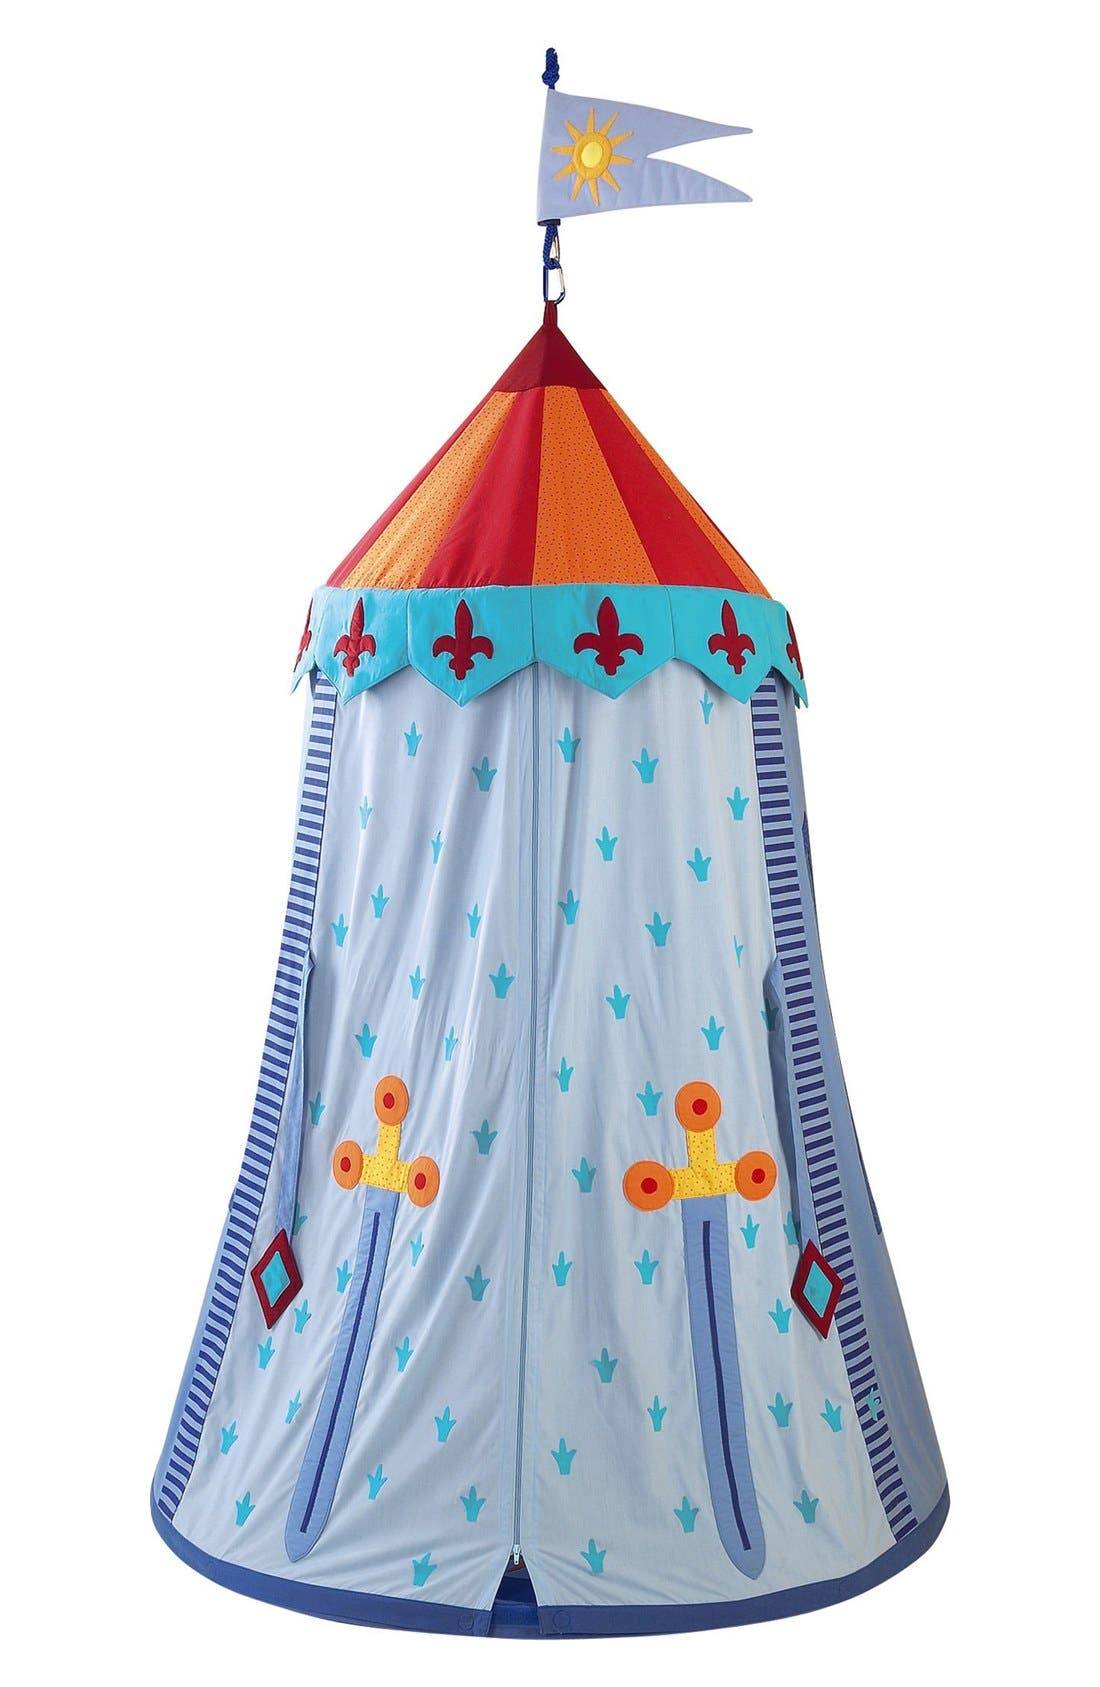 'Knights' Hanging Play Tent,                             Alternate thumbnail 2, color,                             400